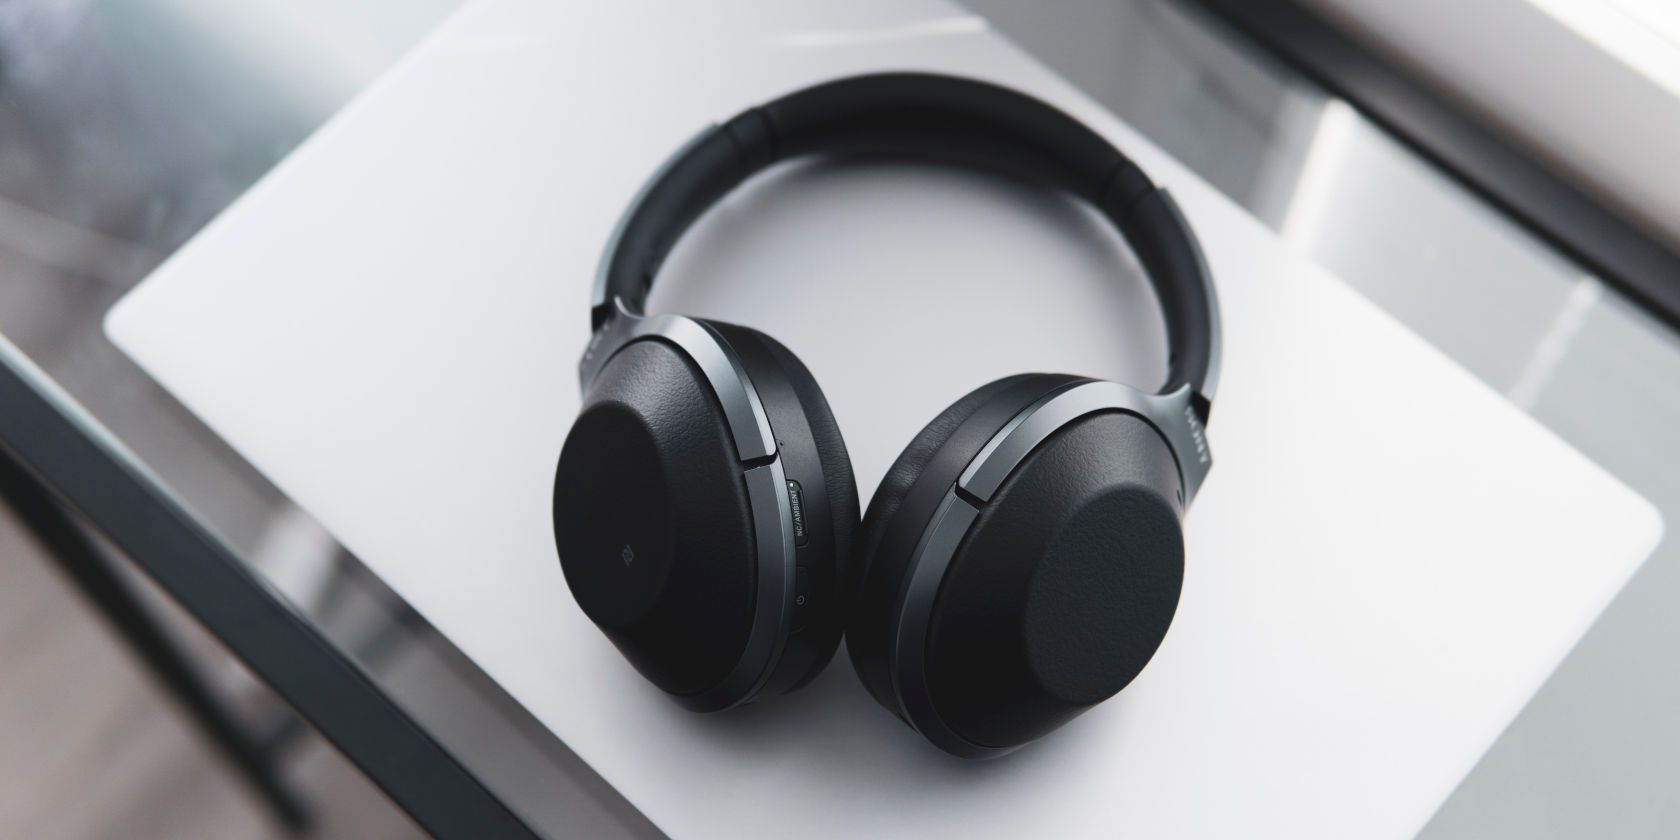 Heres Why Your Headphones Keep Breaking And What You Can Do Technology Tech Techtutorial Techie Headphones Top Bluetooth Headphones Best Headphones